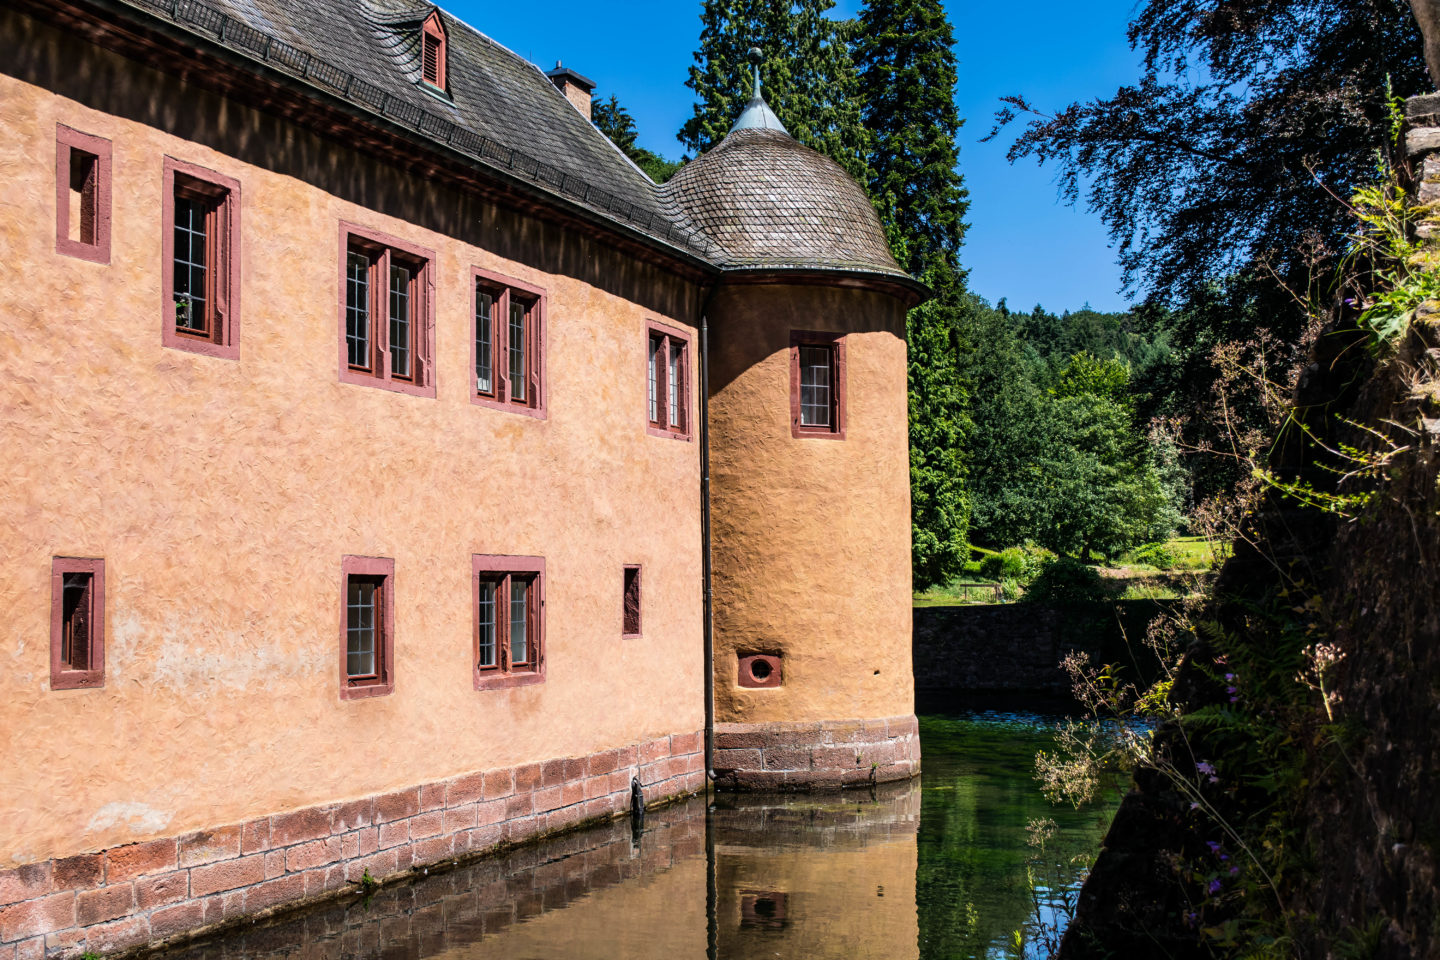 The lake runs on all sides of the Castle Mespelbrunn, like a very large moat.